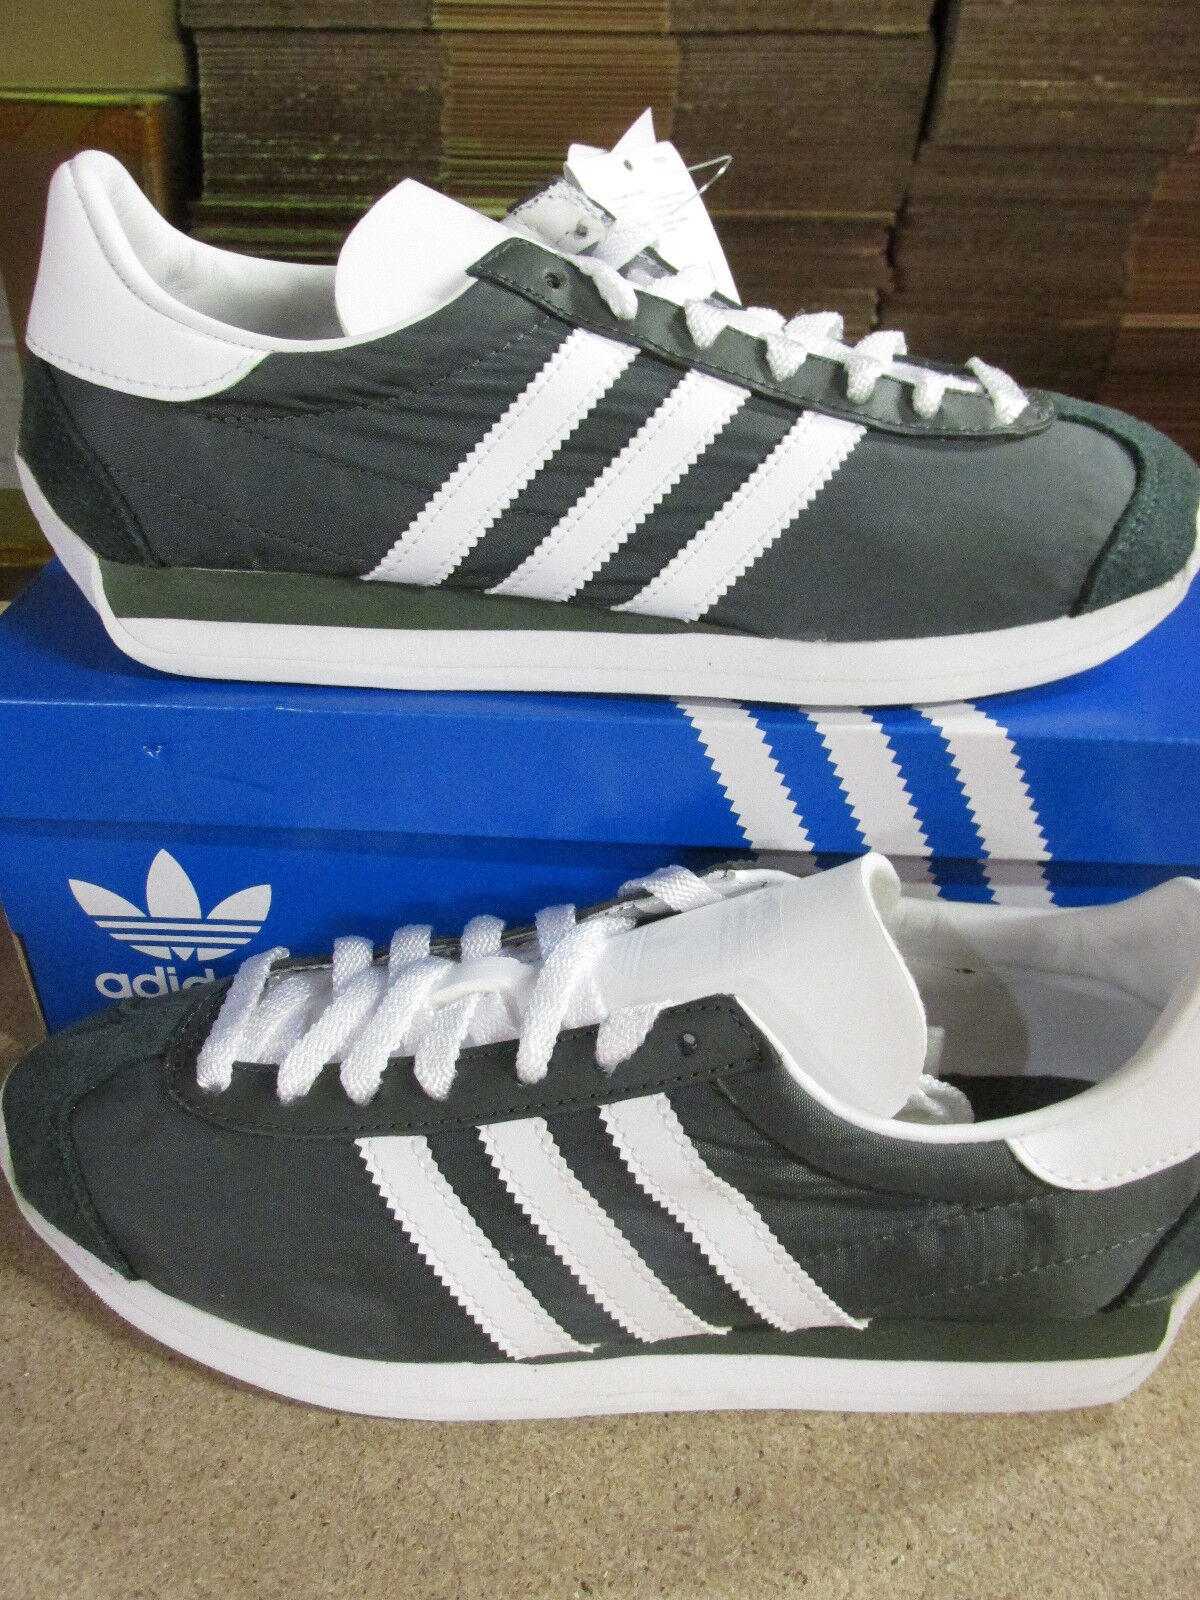 Adidas Originals Country OG Damenschuhe Trainers S32201 Sneakers Schuhes